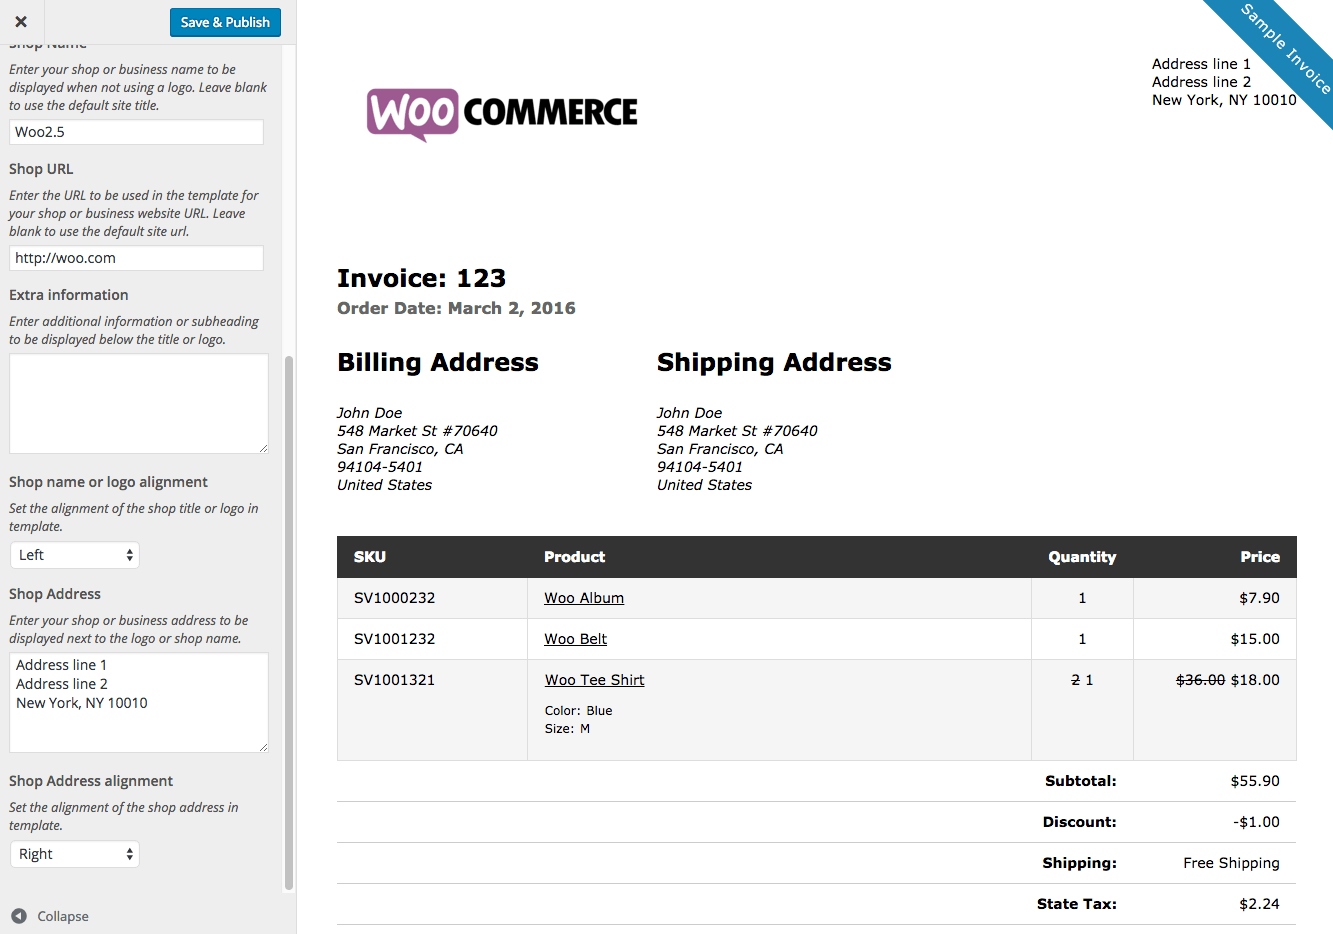 Modaoxus  Seductive Print Invoices Amp Packing Lists  Woocommerce With Outstanding Woocommerce Print Invoices  Packing Lists Customizer With Agreeable Free Printable Invoice Template Pdf Also How To Create A Invoice In Word In Addition Invoice Quote And Free Invoice Templates Word As Well As Sample Plumbing Invoice Additionally Adp Payroll Invoice From Woocommercecom With Modaoxus  Outstanding Print Invoices Amp Packing Lists  Woocommerce With Agreeable Woocommerce Print Invoices  Packing Lists Customizer And Seductive Free Printable Invoice Template Pdf Also How To Create A Invoice In Word In Addition Invoice Quote From Woocommercecom